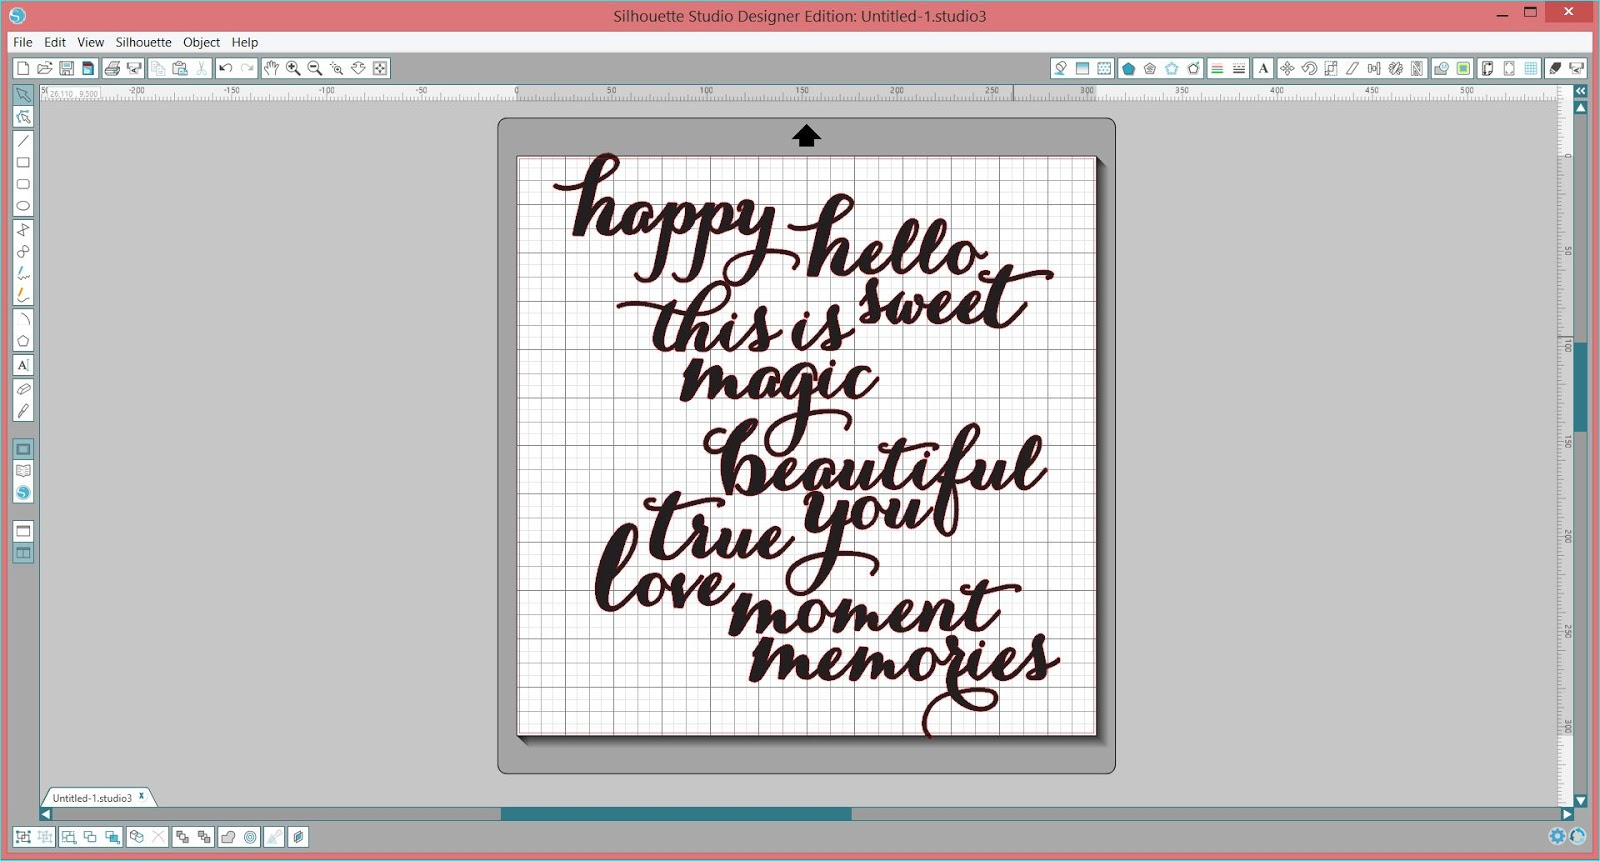 How To Use Silhouette Sketch Pens | A Silhouette Cameo Tutorial by Monique Liedtke